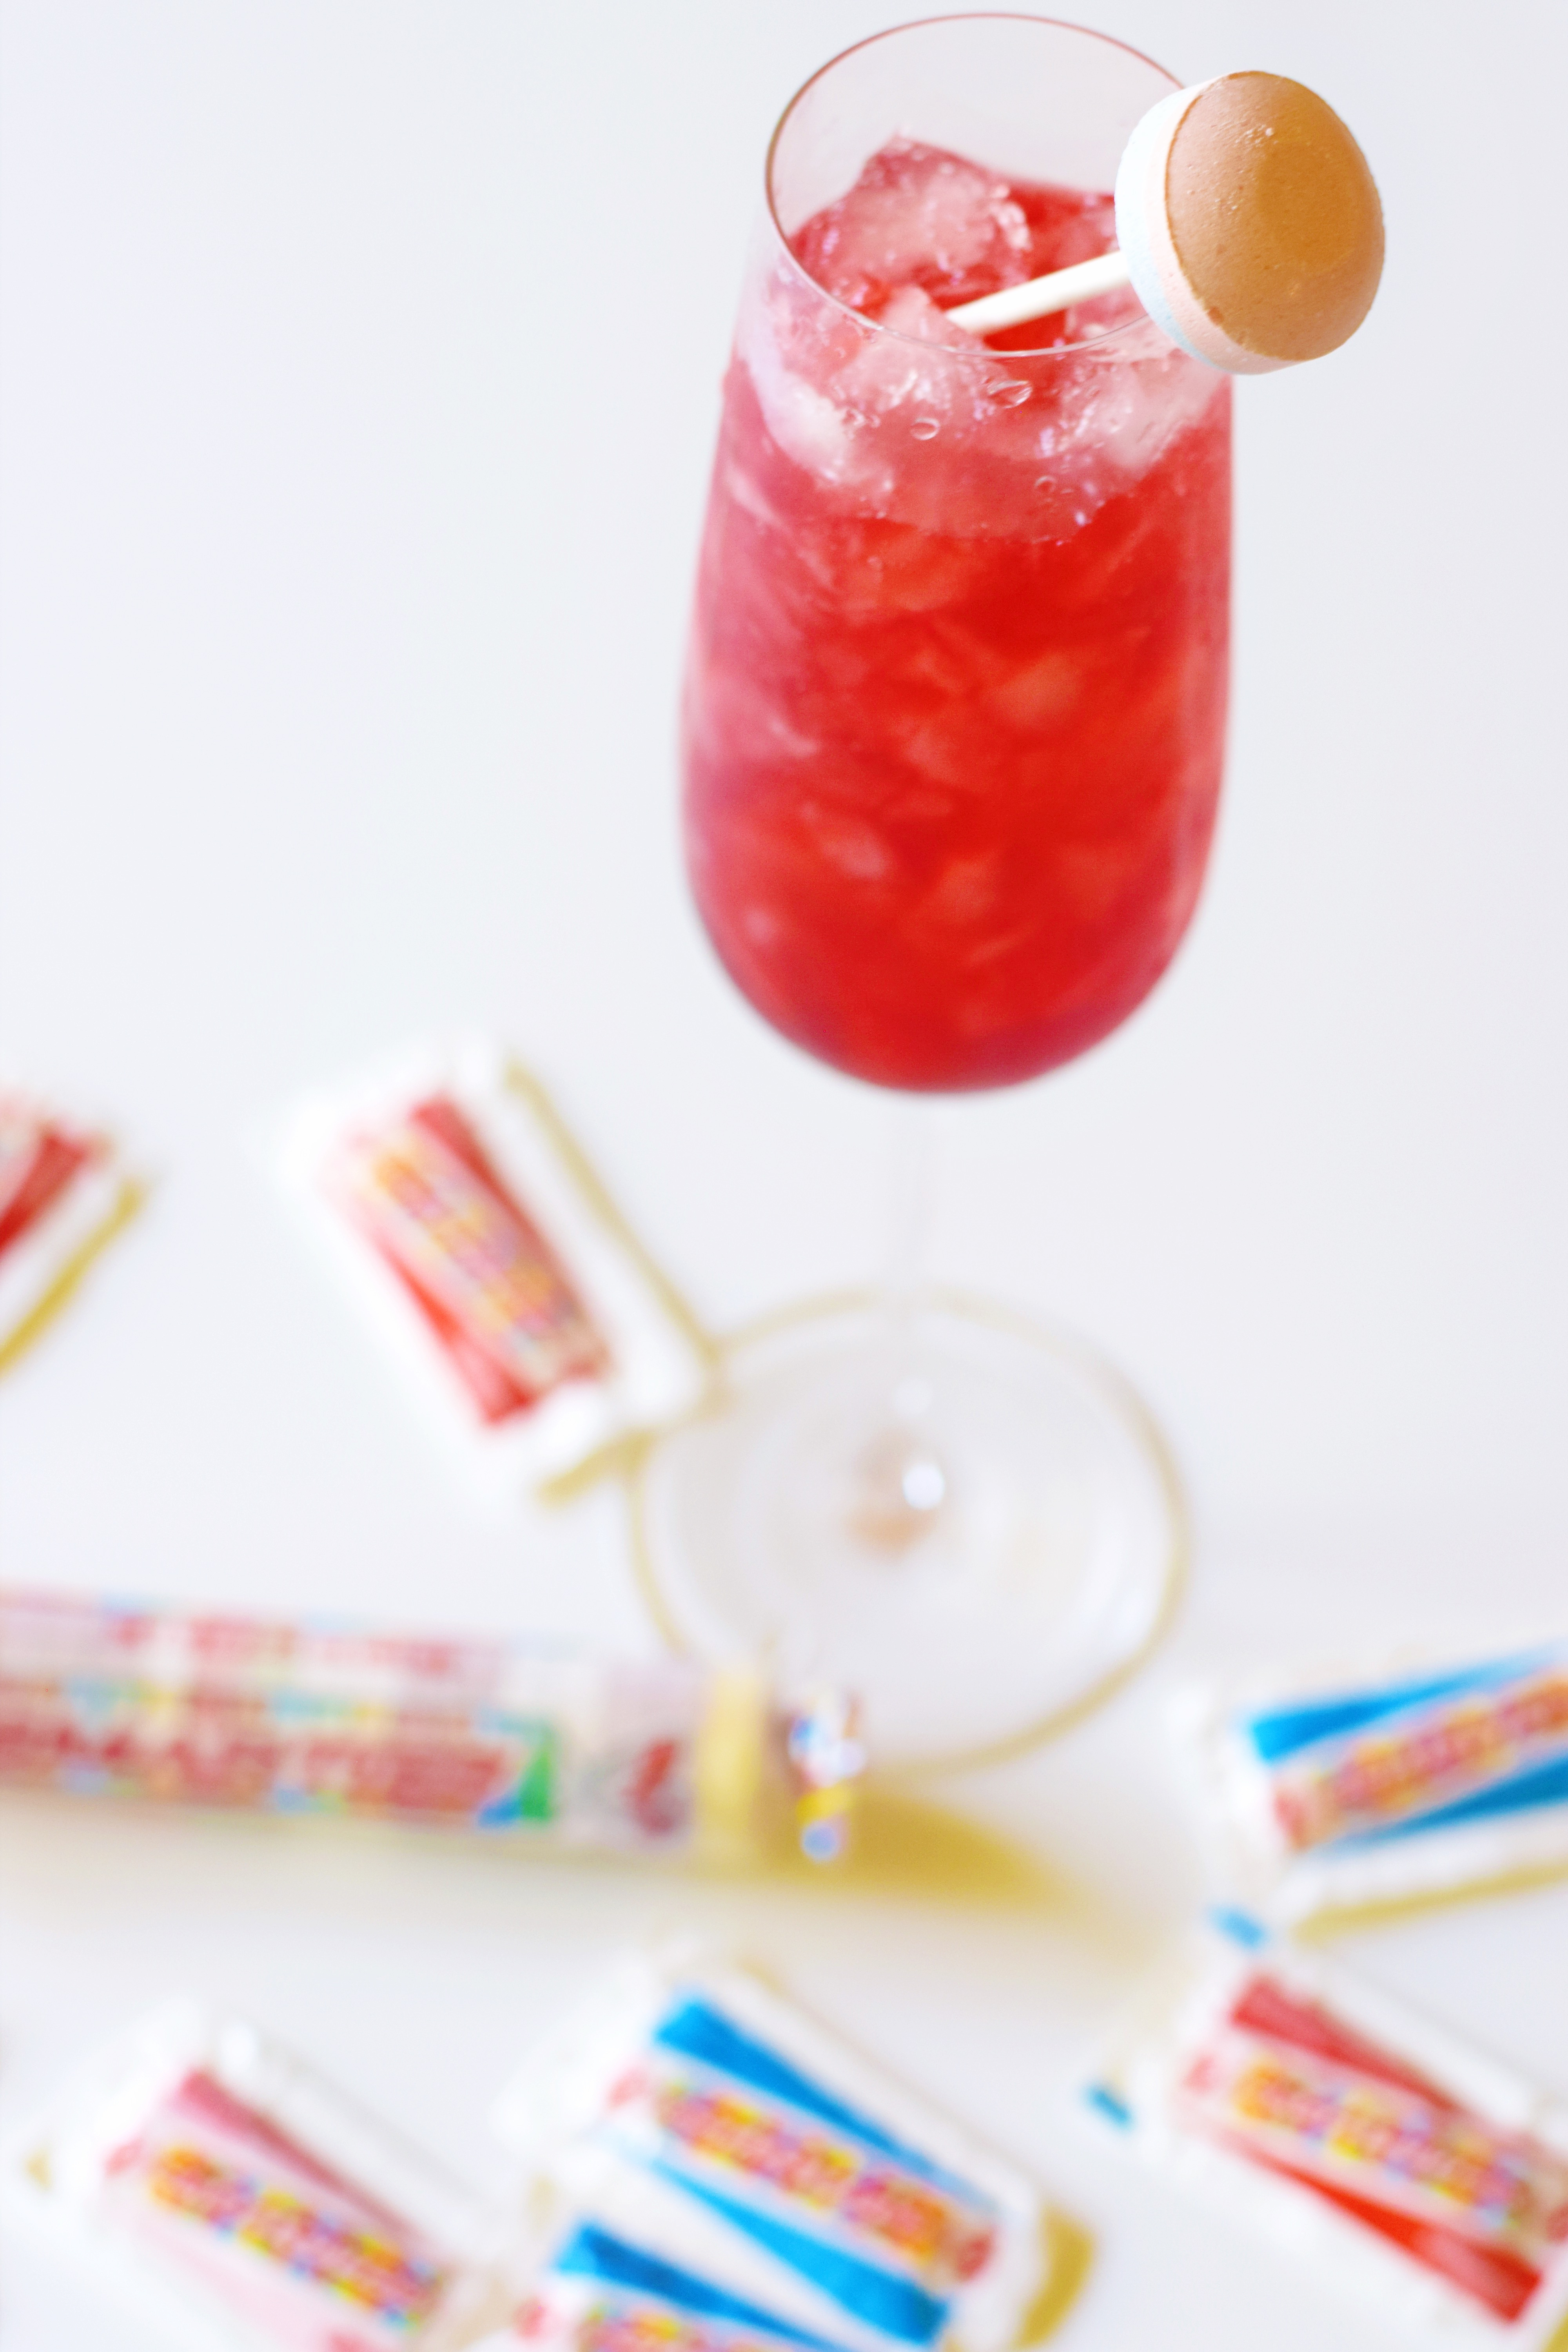 Shaken Strawberry Summer Cocktail - Candy Cocktail - Summer Cocktail - Easy Cocktail Idea - Cocktail Recipe - Shaken Cocktail - Strawberry Cocktail - Fruity Cocktail - Rum Cocktail - Communikait by Kait Hanson #cocktail #summer #strawberrycocktail